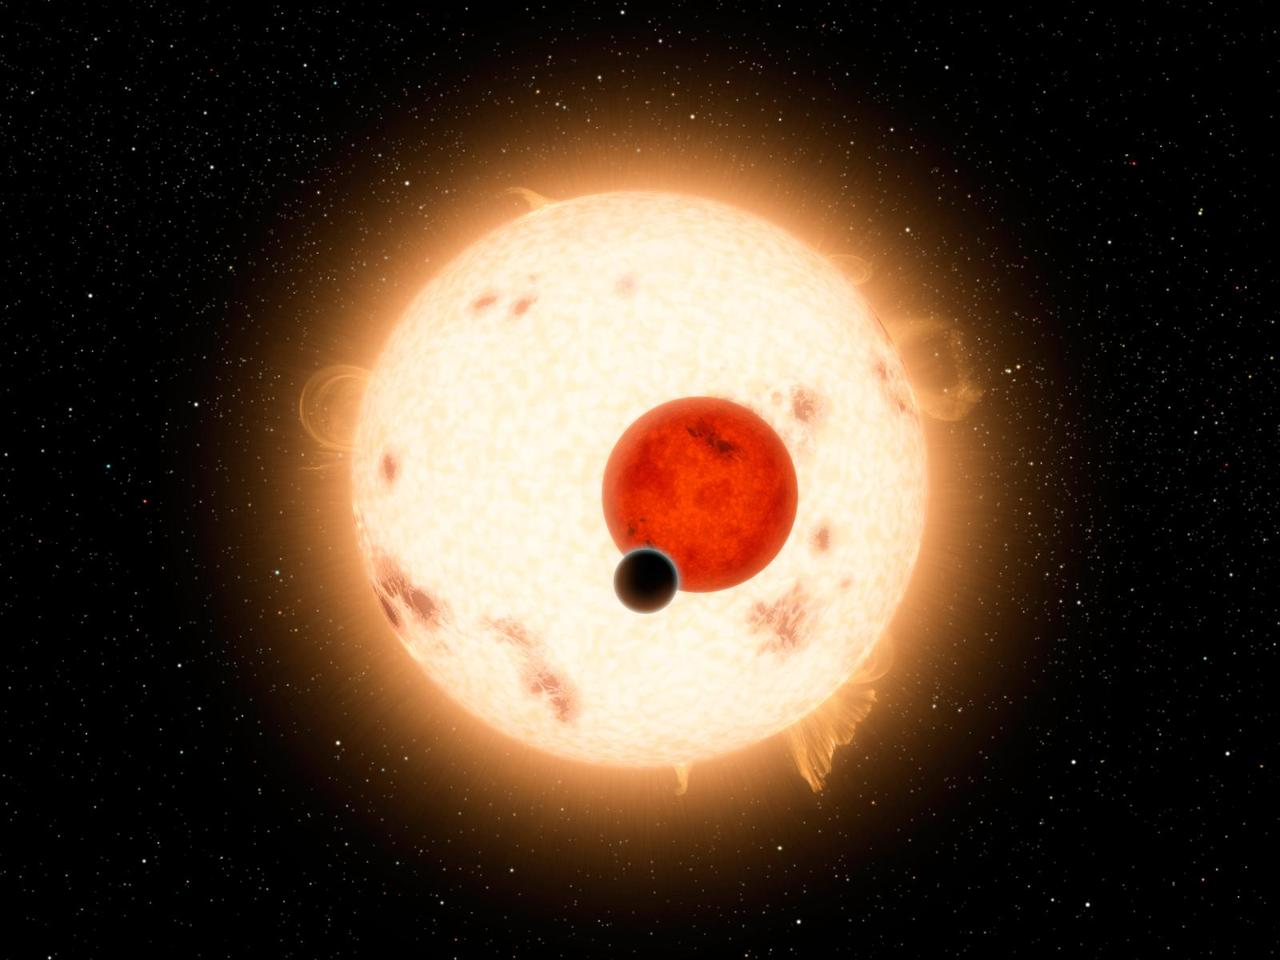 NASA's Kepler mission has discovered a world where two suns set over the horizon instead of just one (Image: NASA/JPL-Caltech/R. Hurt)